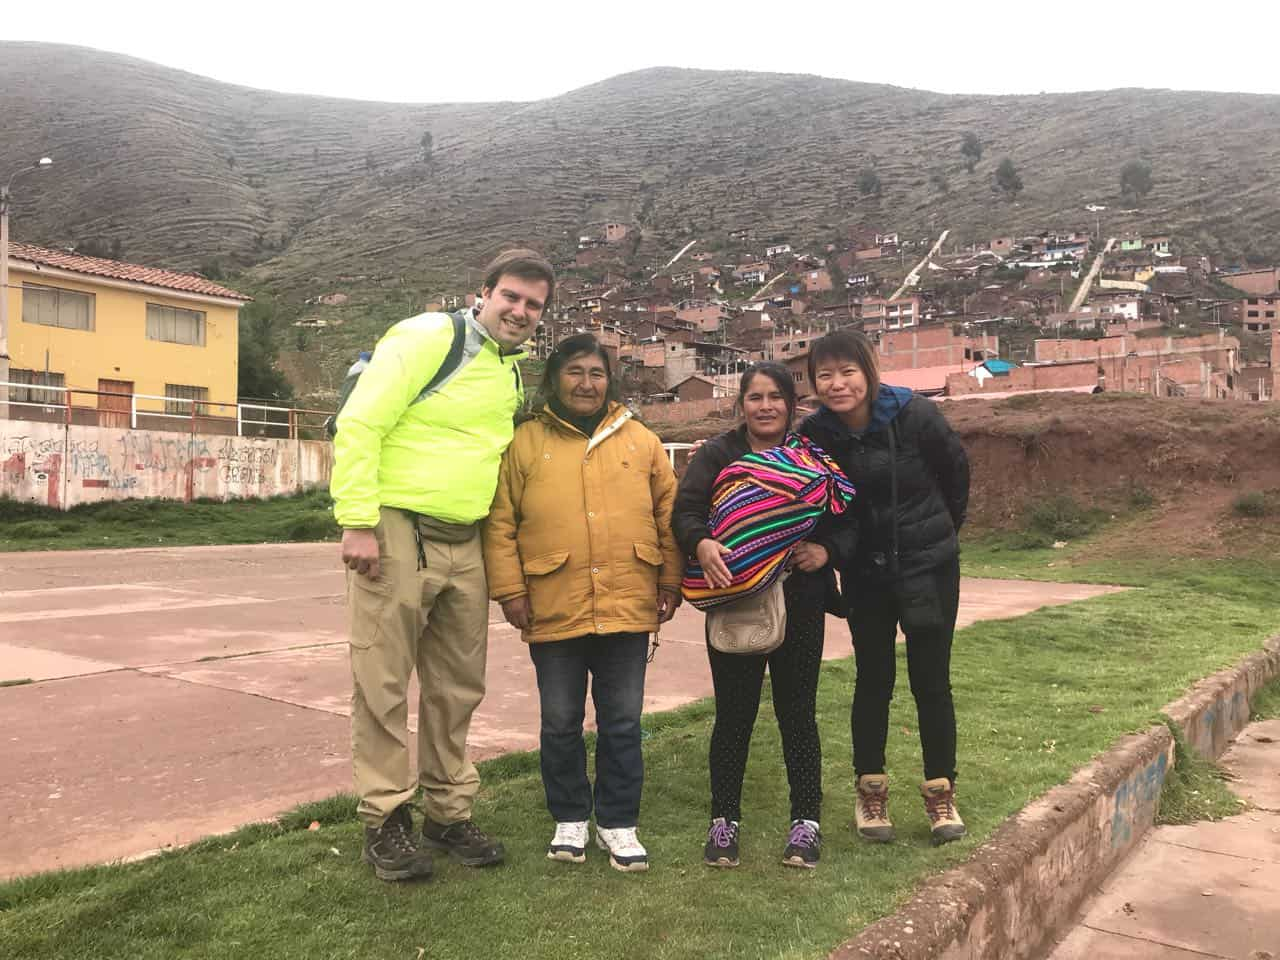 Tours near Cusco